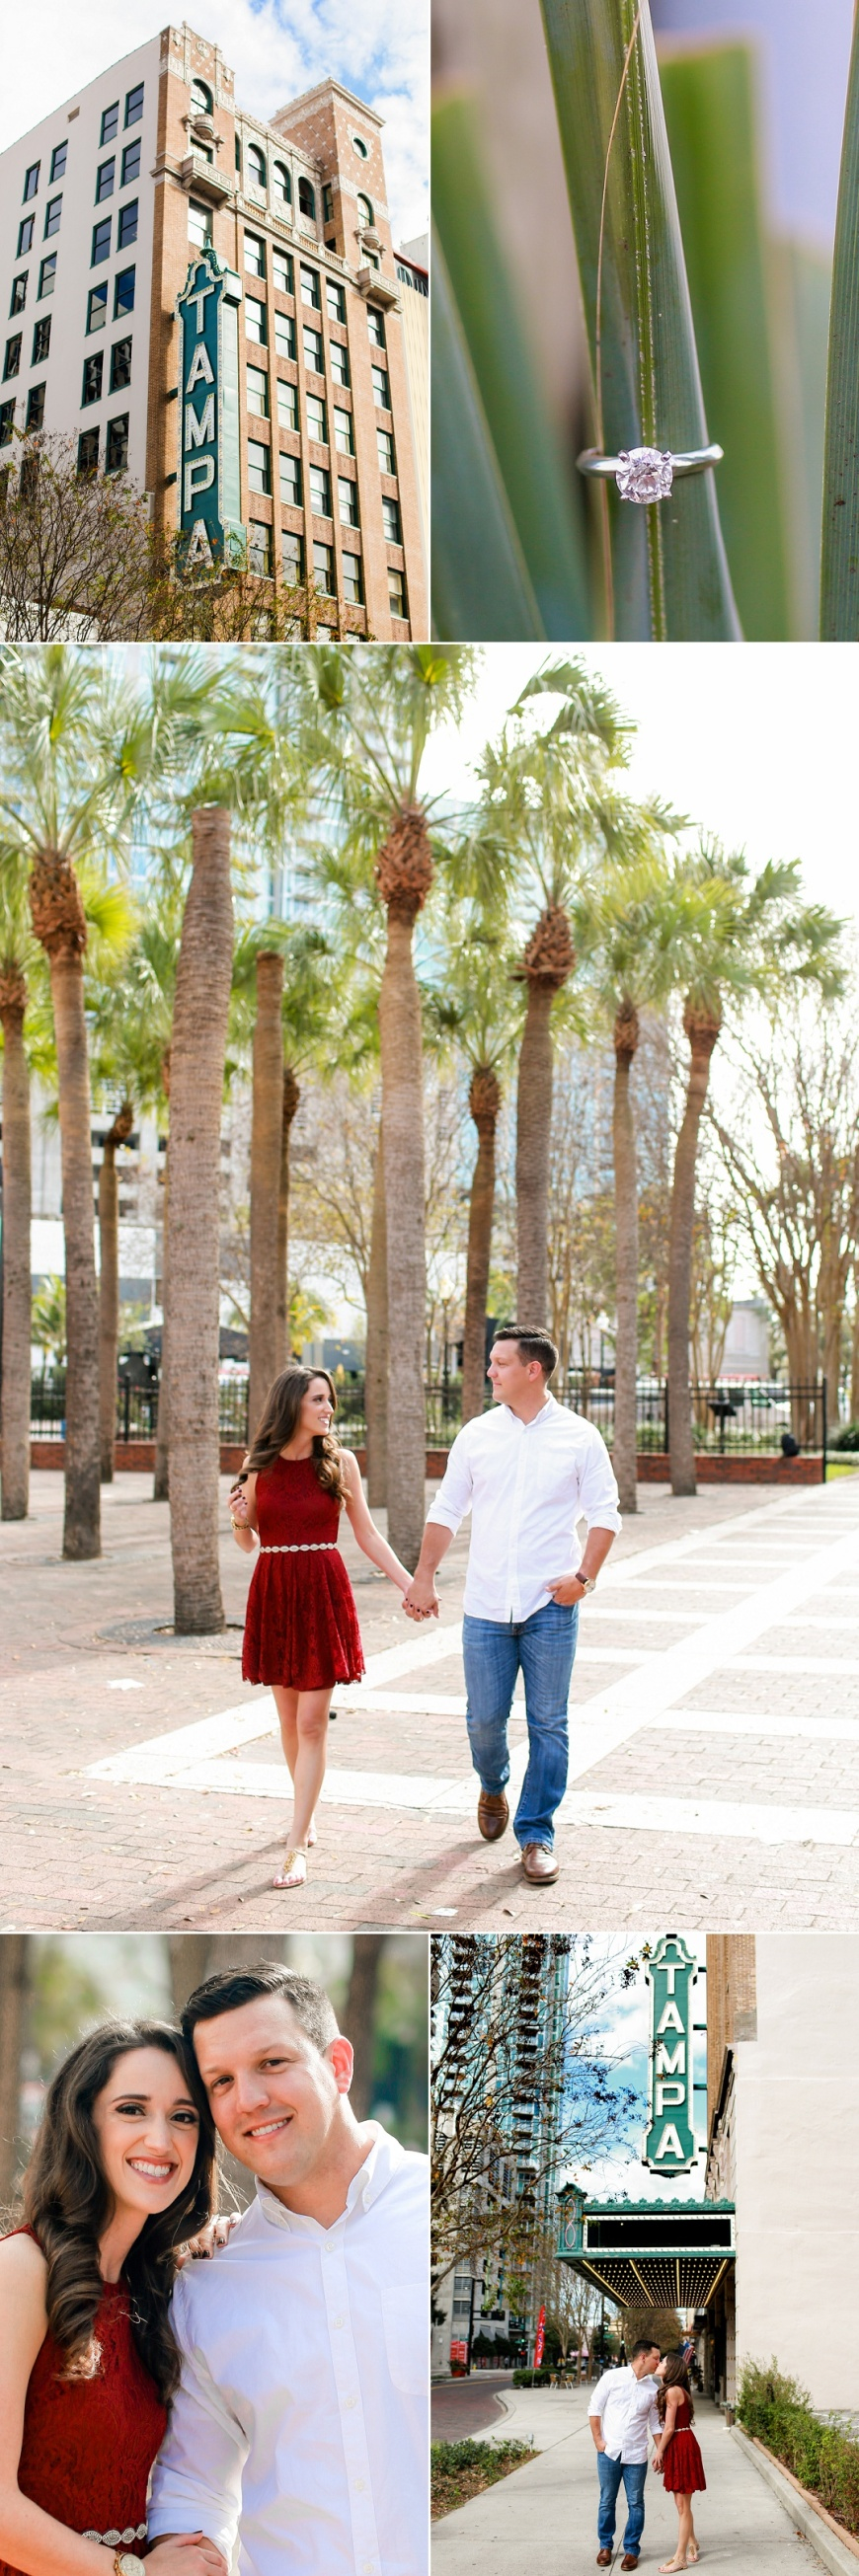 Ybor-City-Tampa-Engagement-Photographer_1000.jpg